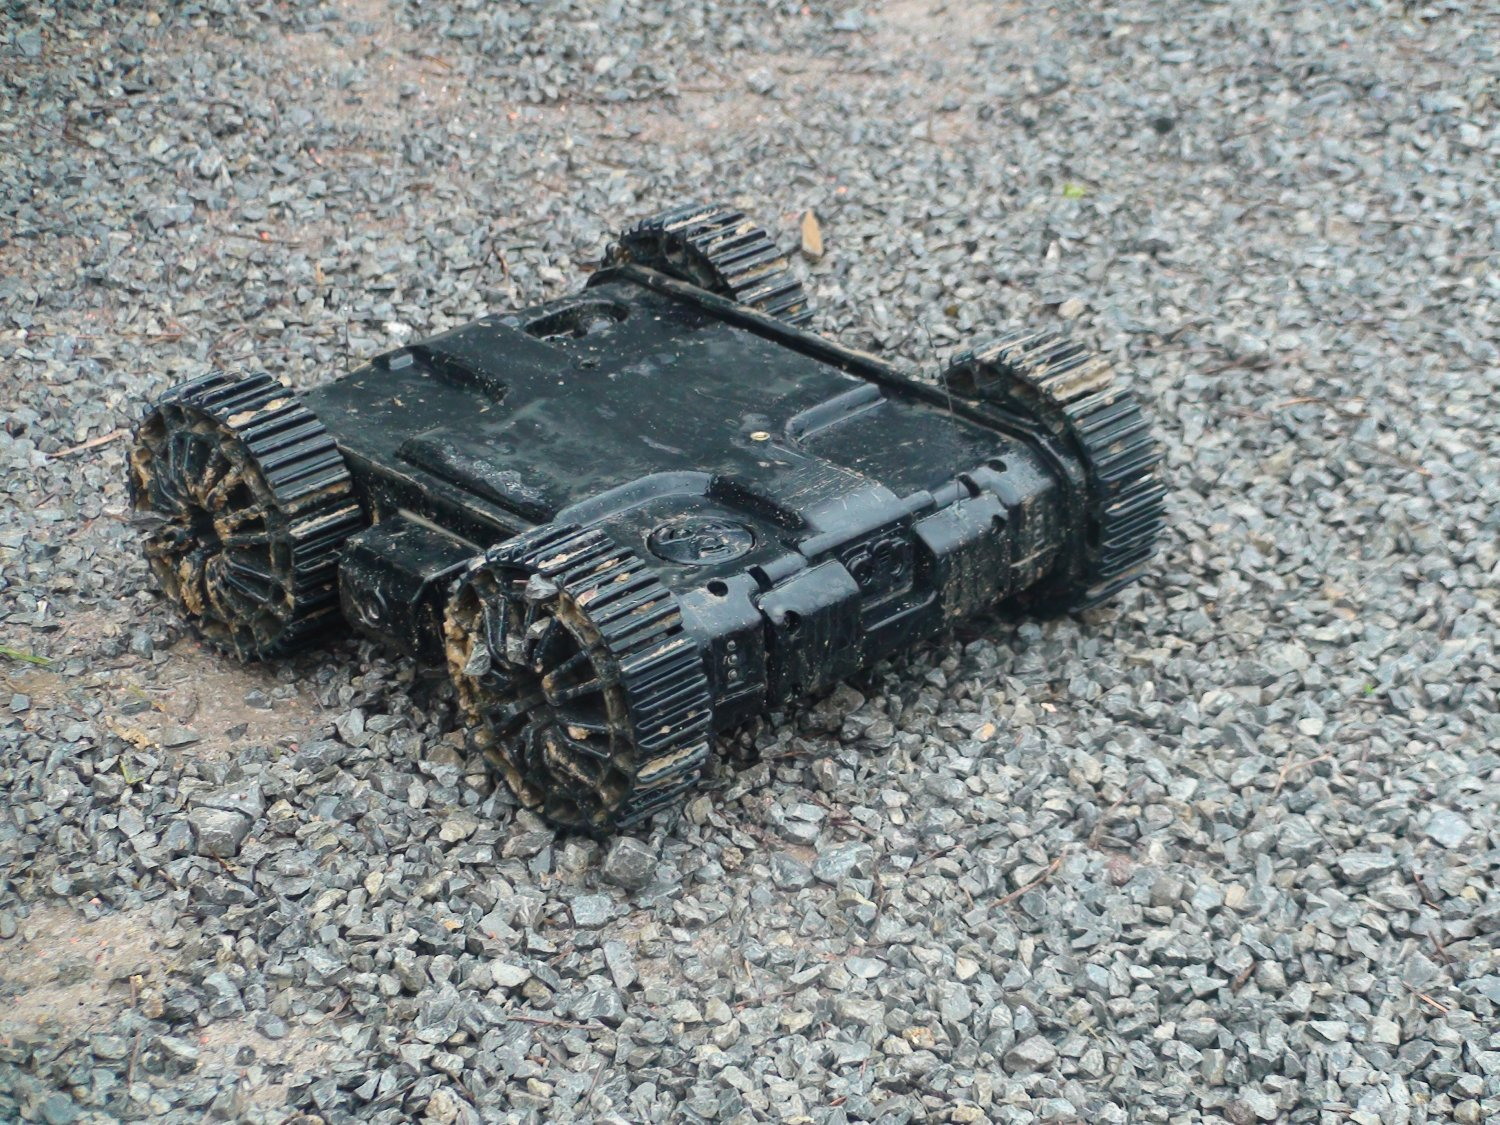 <!--:en-->MacroUSA Armadillo V2 Throwable Micro Unmanned Ground Vehicle (MUGV) Tactical Robot Wins Innovation Award at  Military European Land Robot (M-ELROB) 2010 Trial/Competition <!--:-->